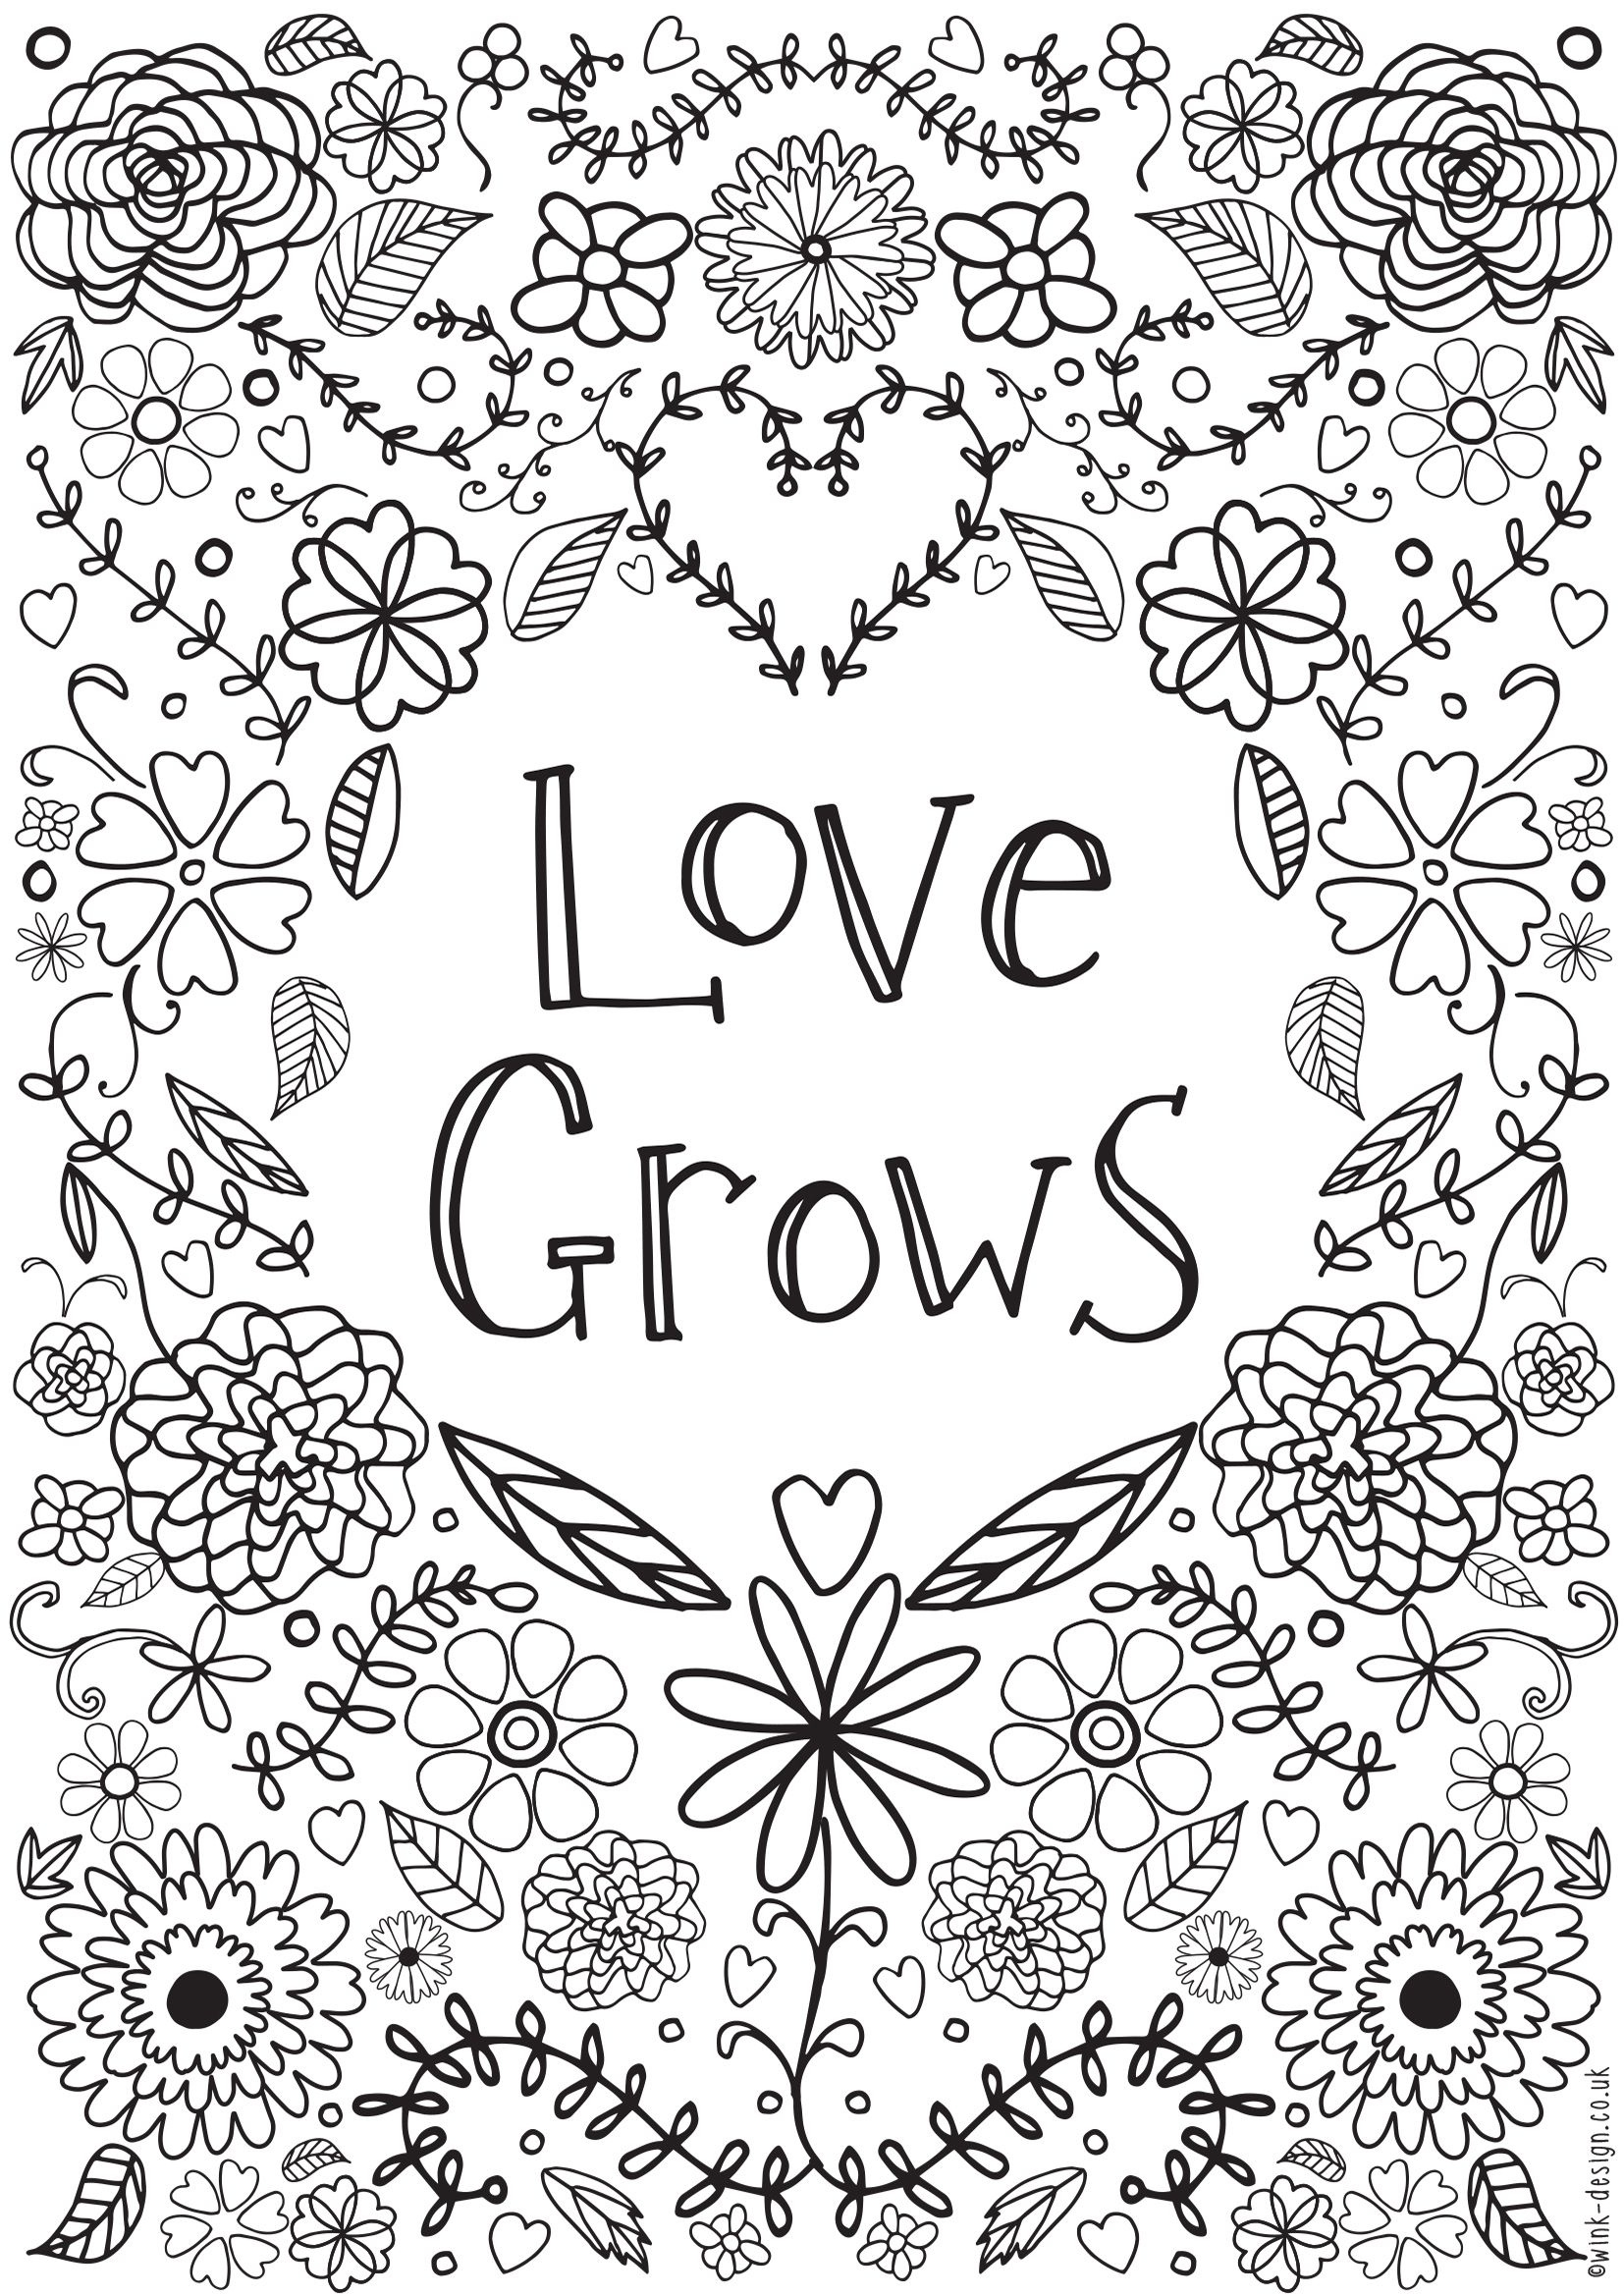 Awesome Free Printable Quote Coloring Pages For Adults | Coloring Pages - Free Printable Inspirational Coloring Pages